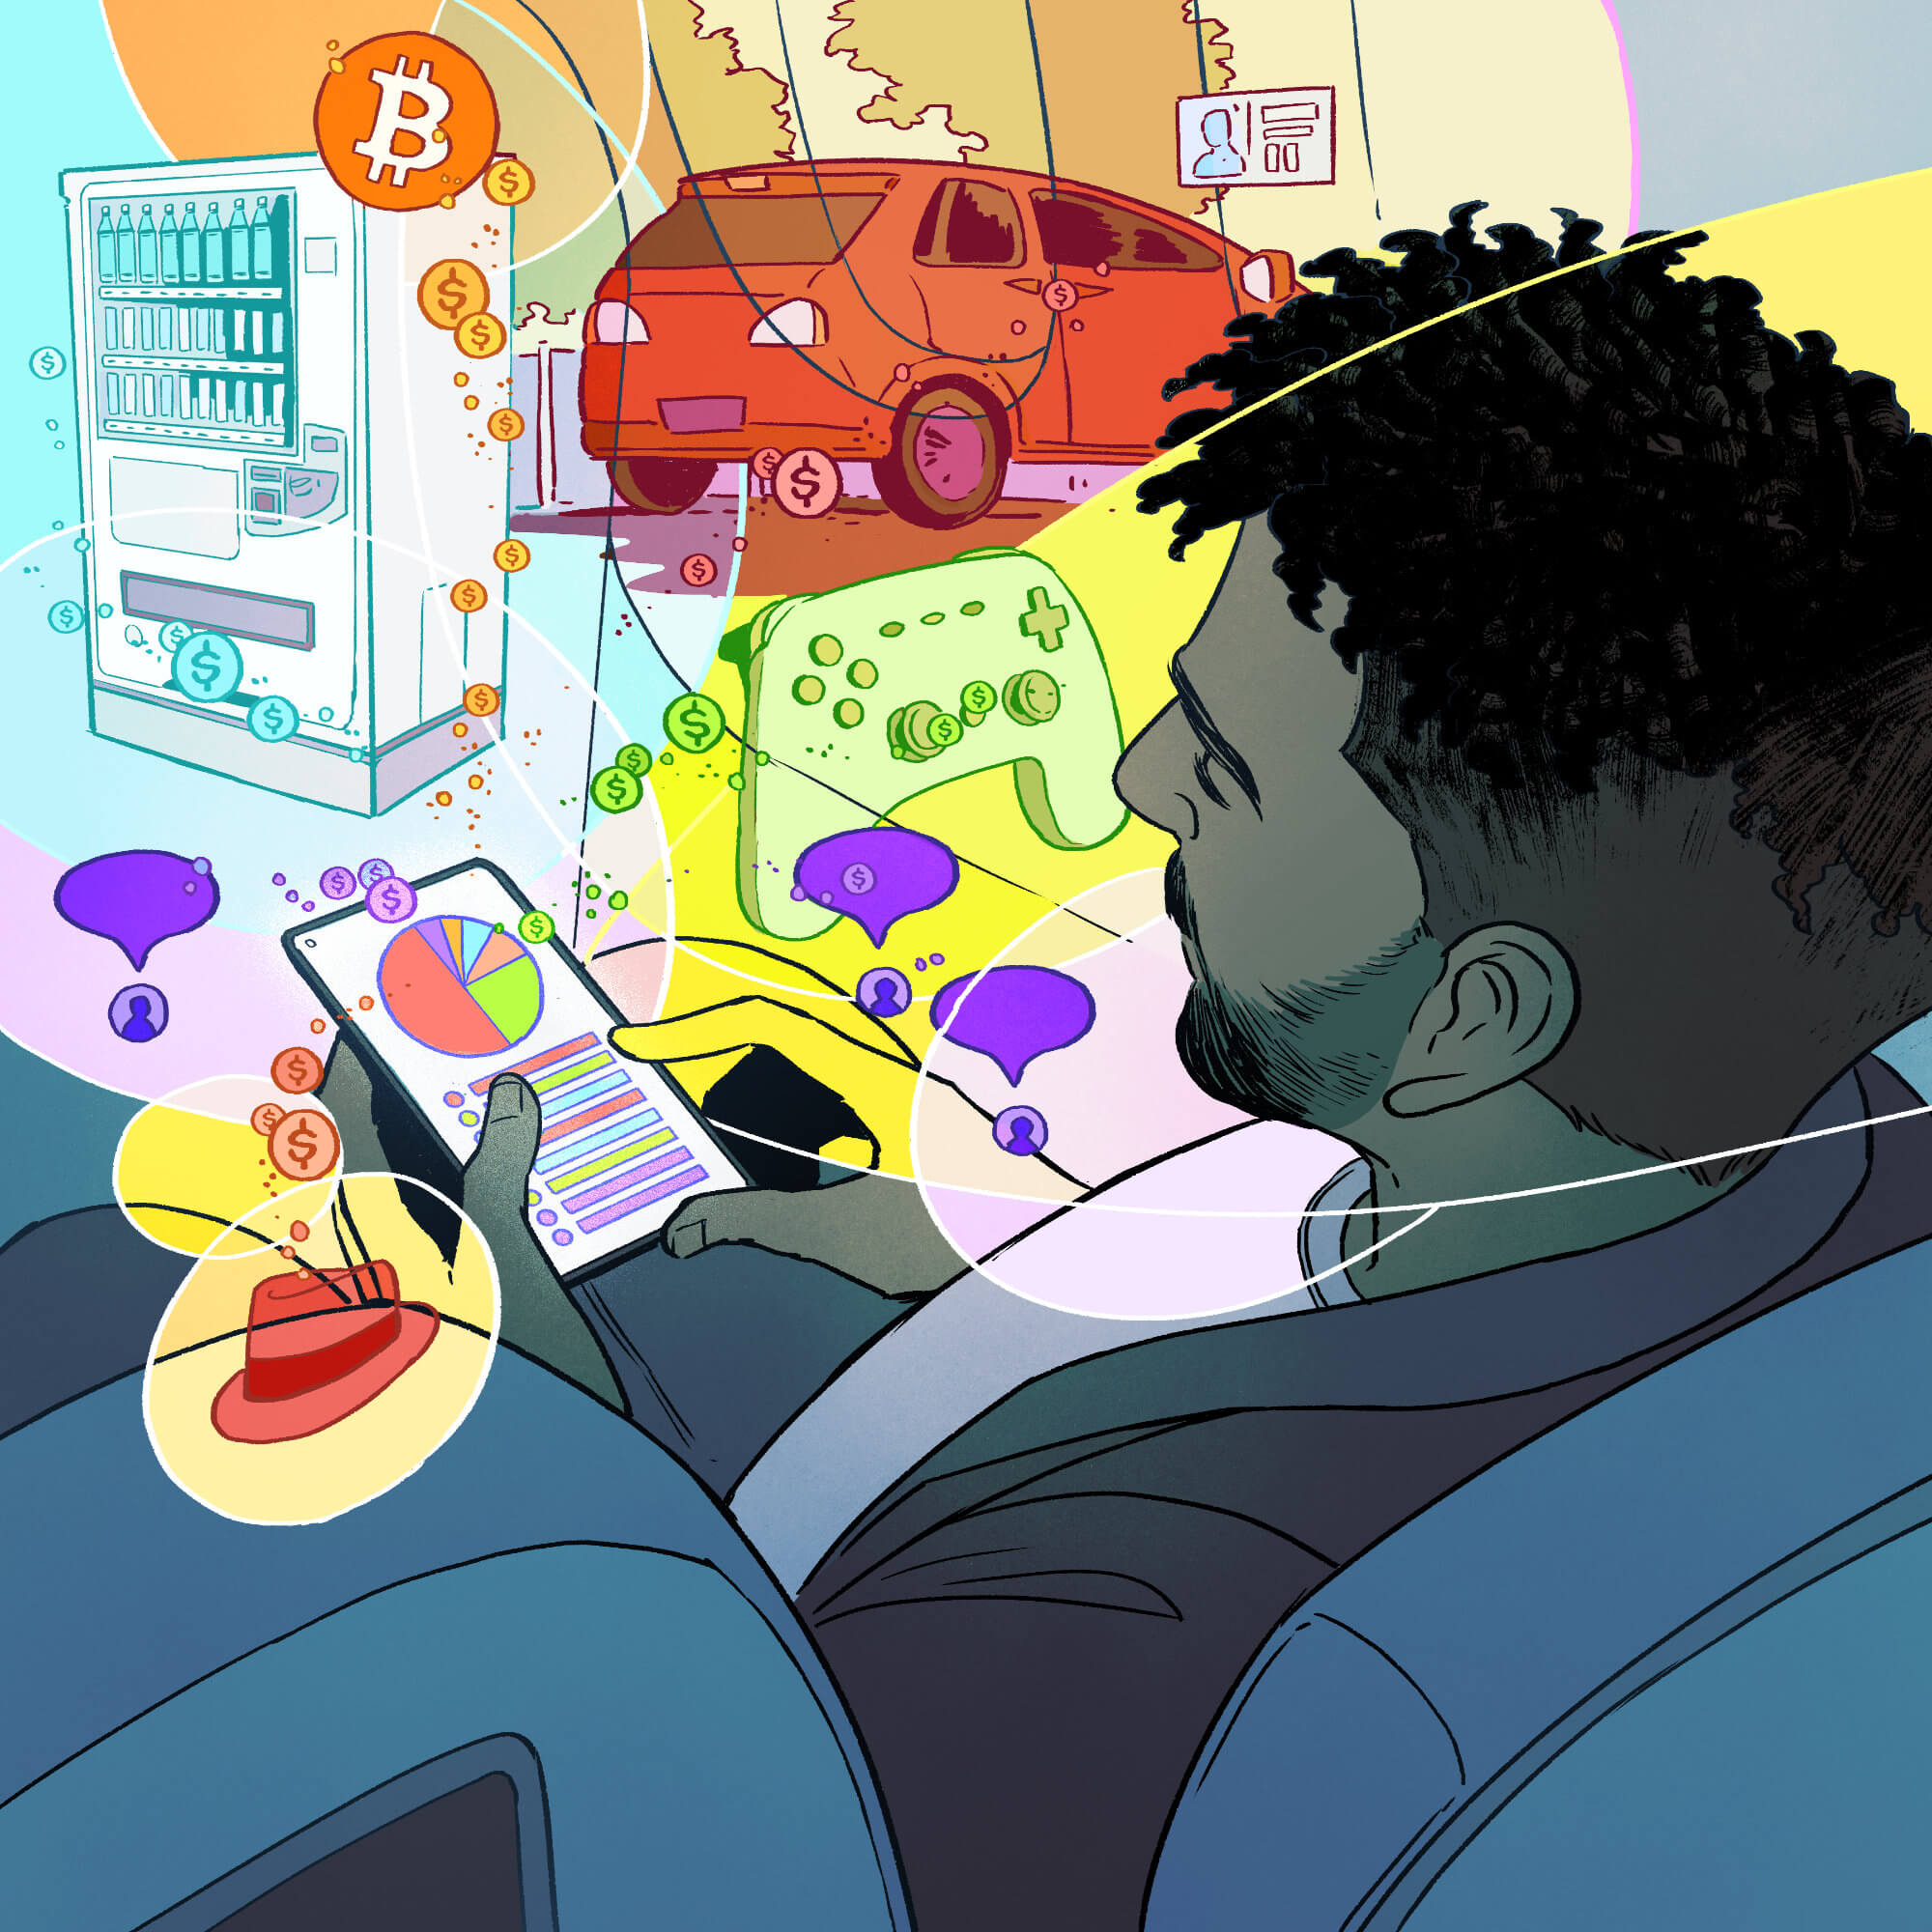 An illustration of a man with a smartphone and illuminated examples of his businesses are floating around the phone